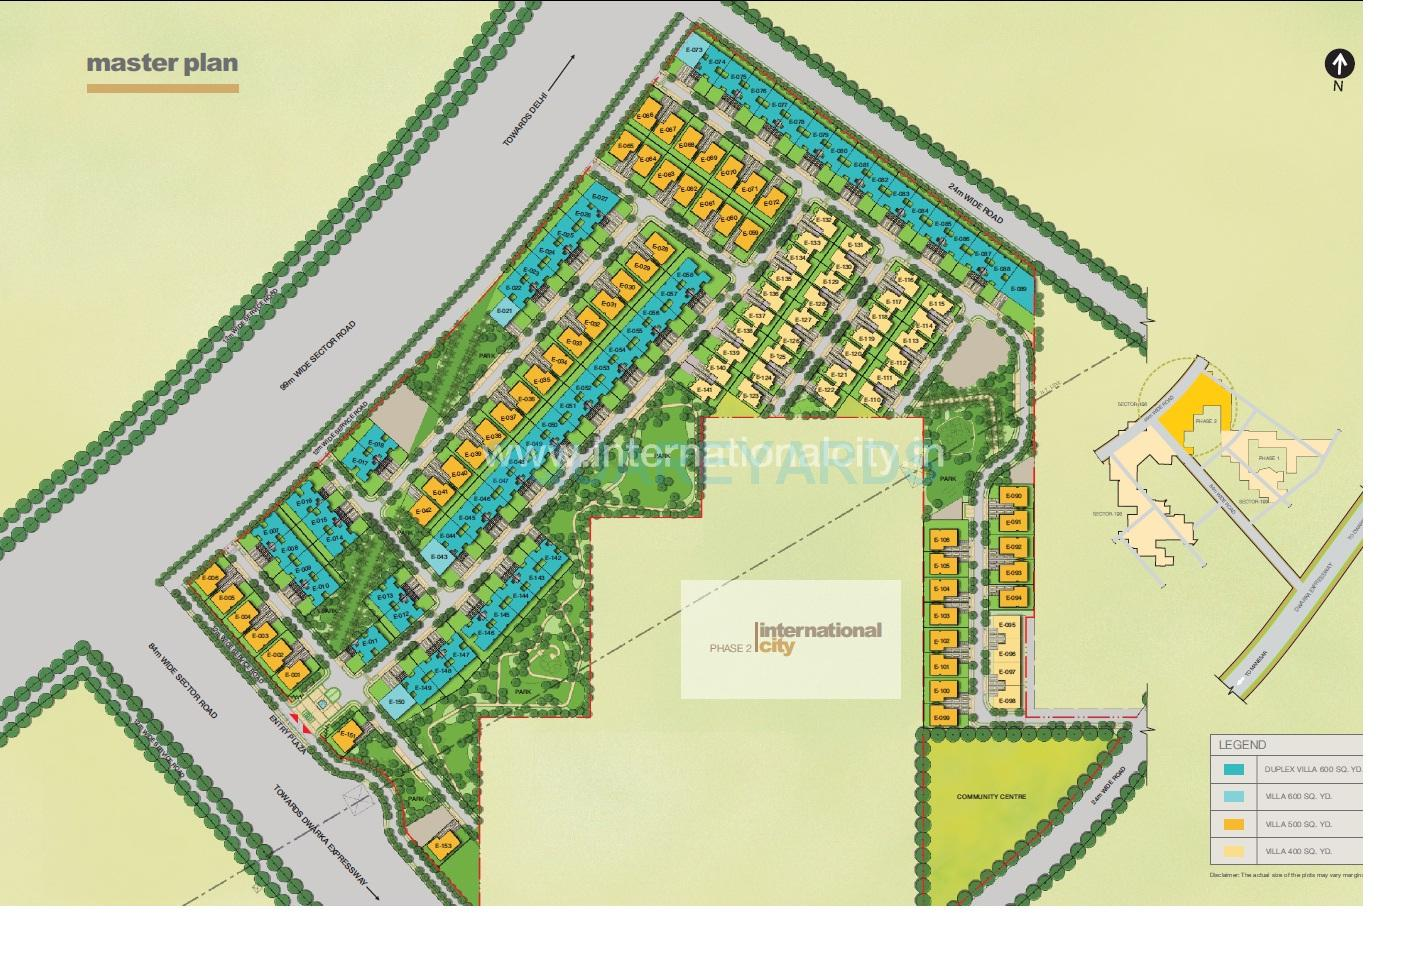 sobha international city phase2 master plan image1